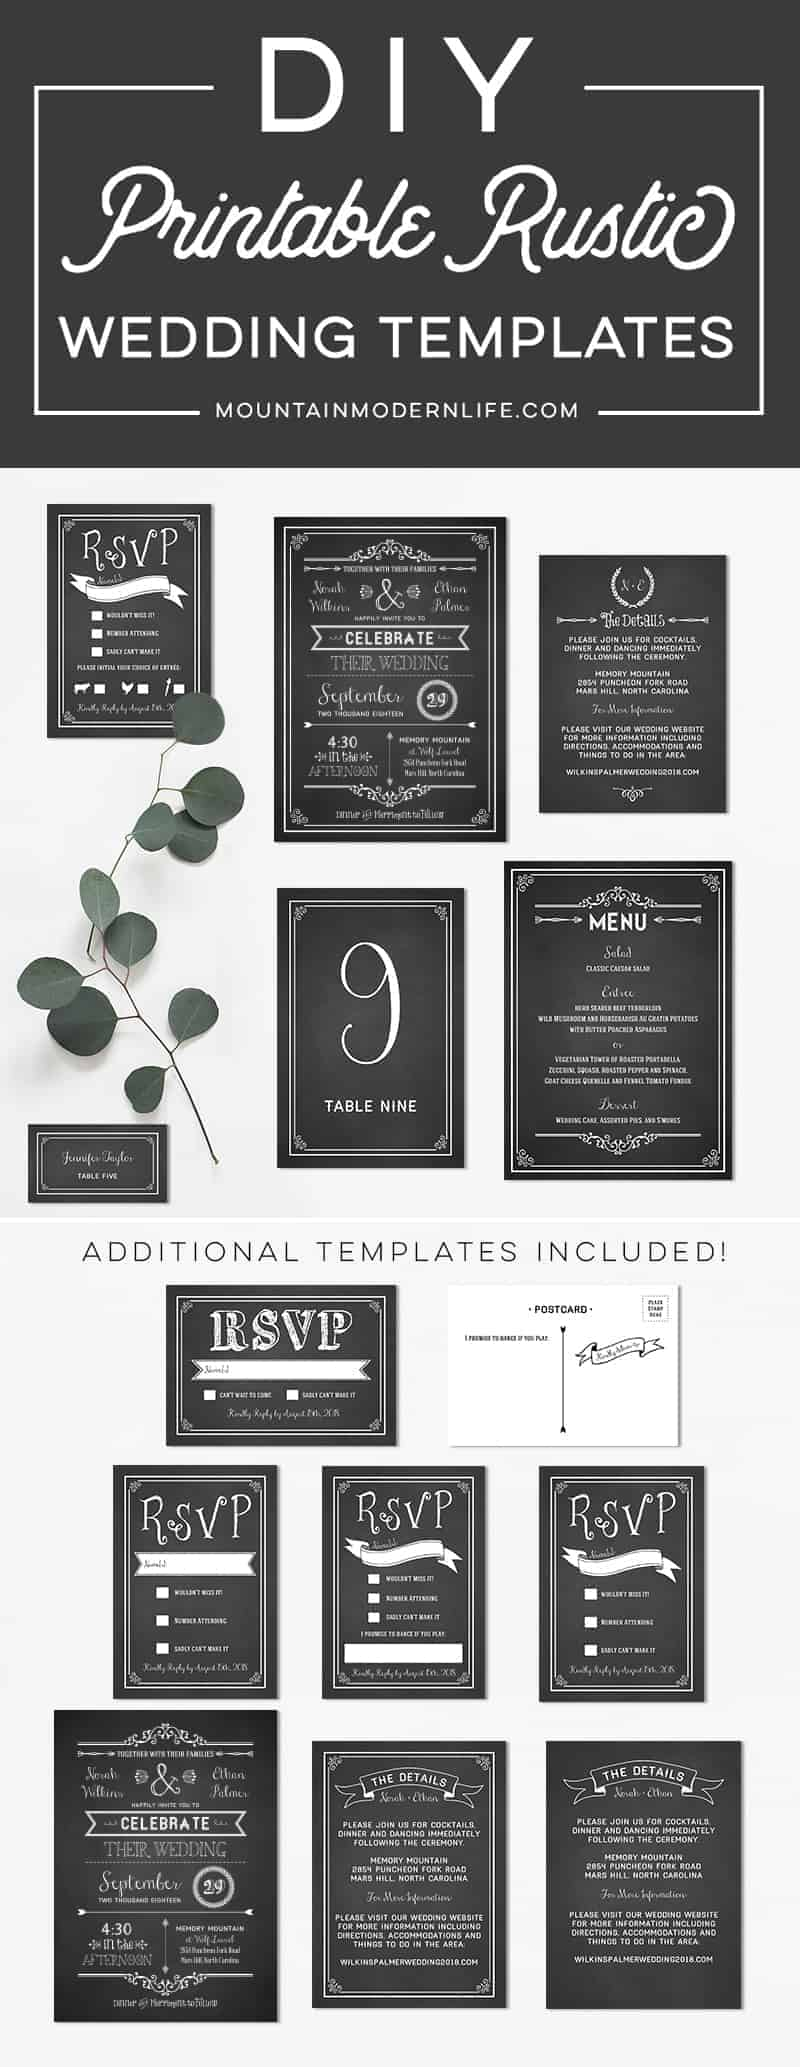 Printable DIY Wedding Invitation Set | MountainModernLife.com